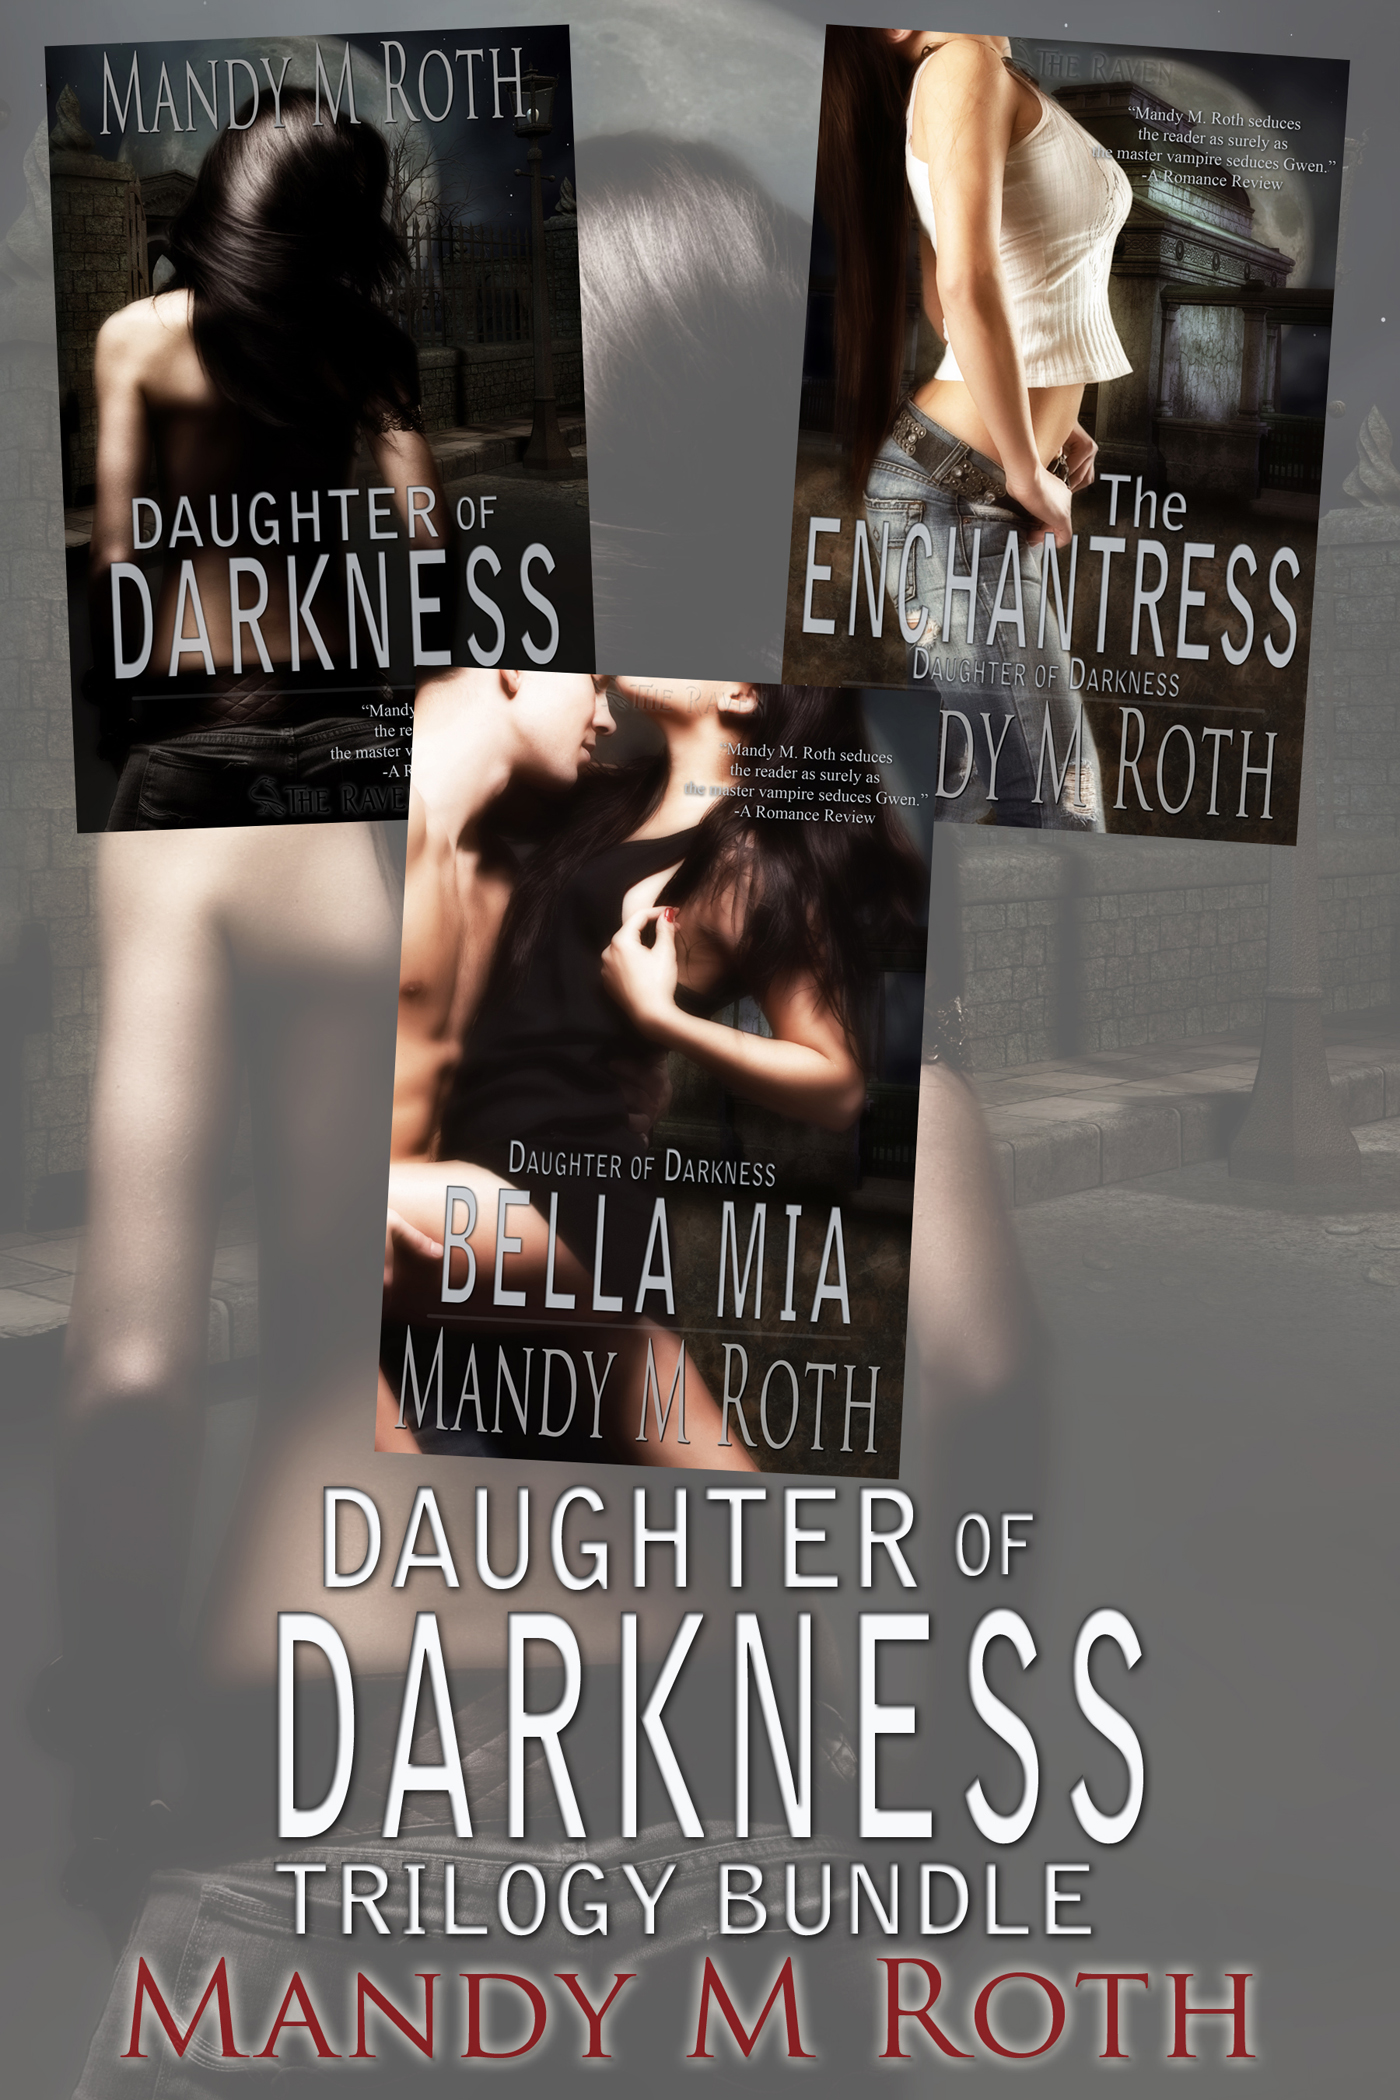 Mandy M. Roth - Daughter of Darkness Trilogy (3 Book Bundle)